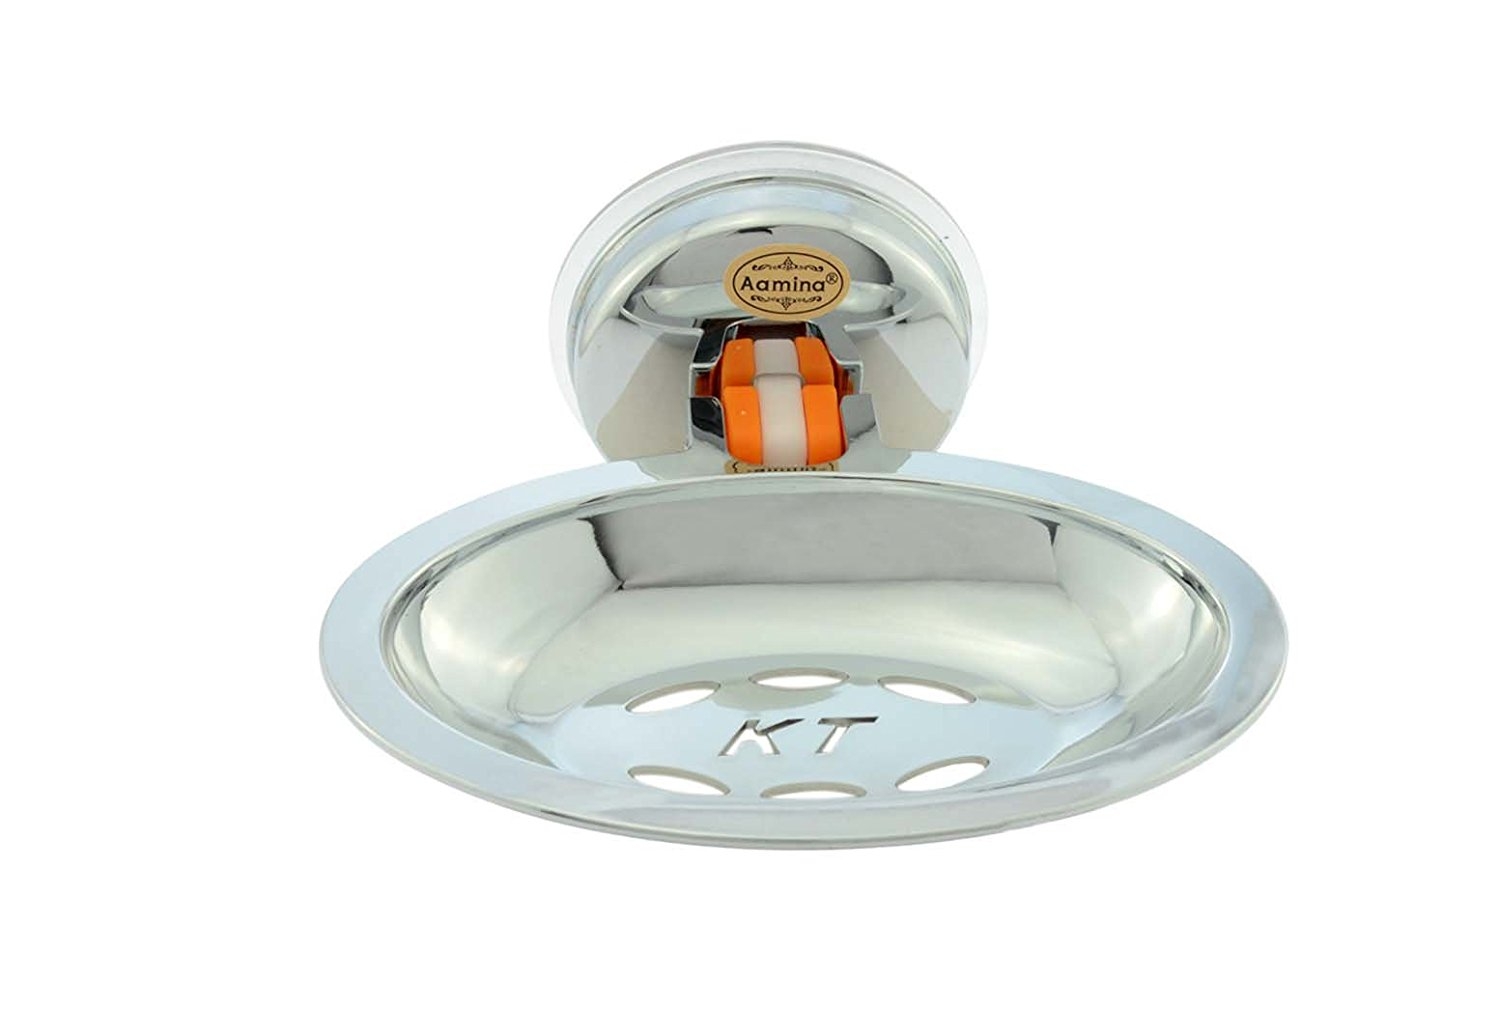 Aamina Creative Sucking Disc Of Wall Mounted Soap Dishes For Bathroom Or Kitchen